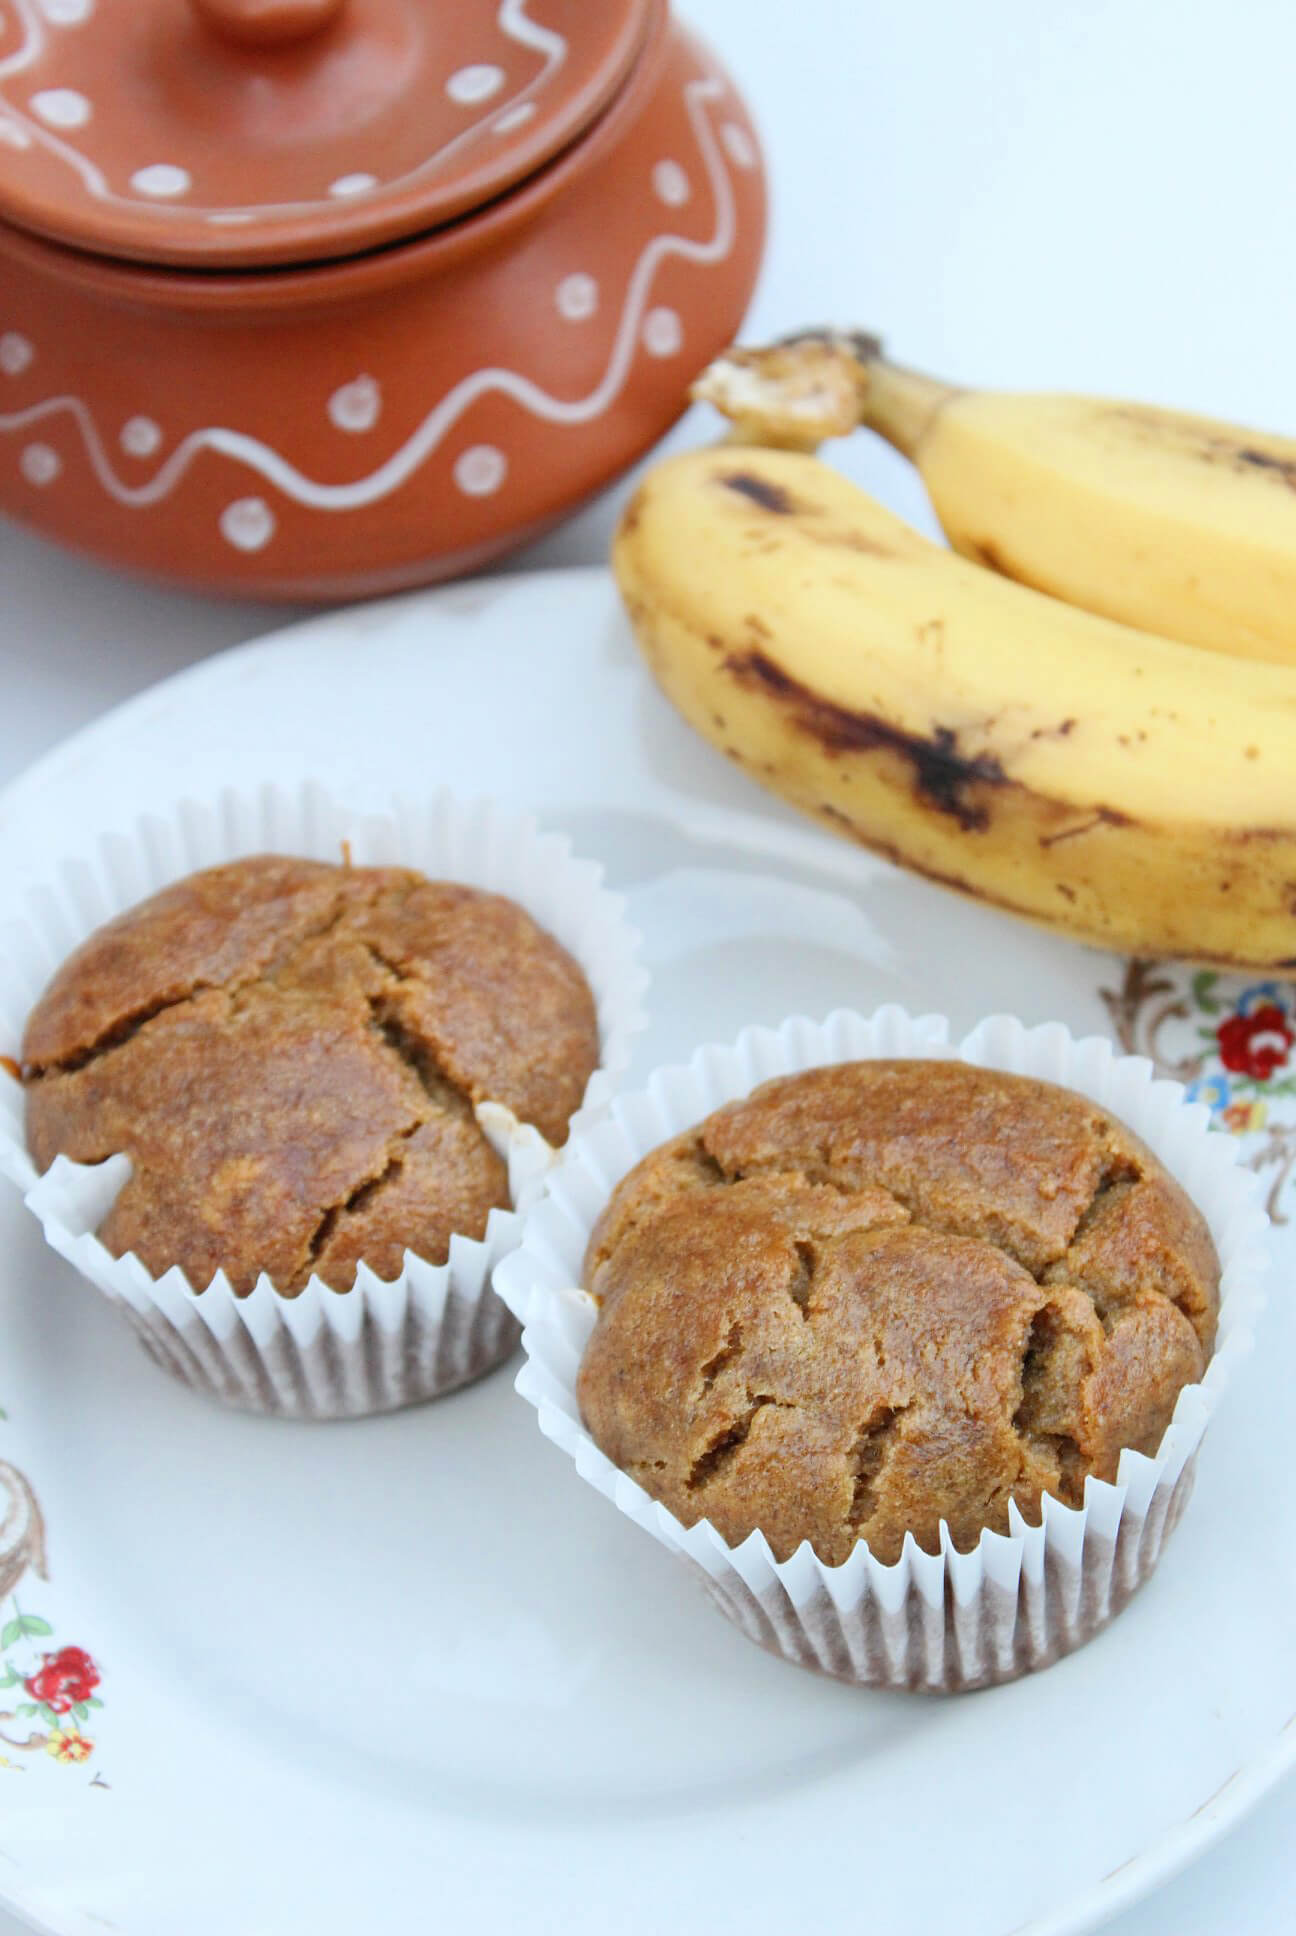 Eggless Banana Muffins With Yogurt: Bake these classic egg free banana muffins as soon as possible! They are soft, moist and full of flavors!!!